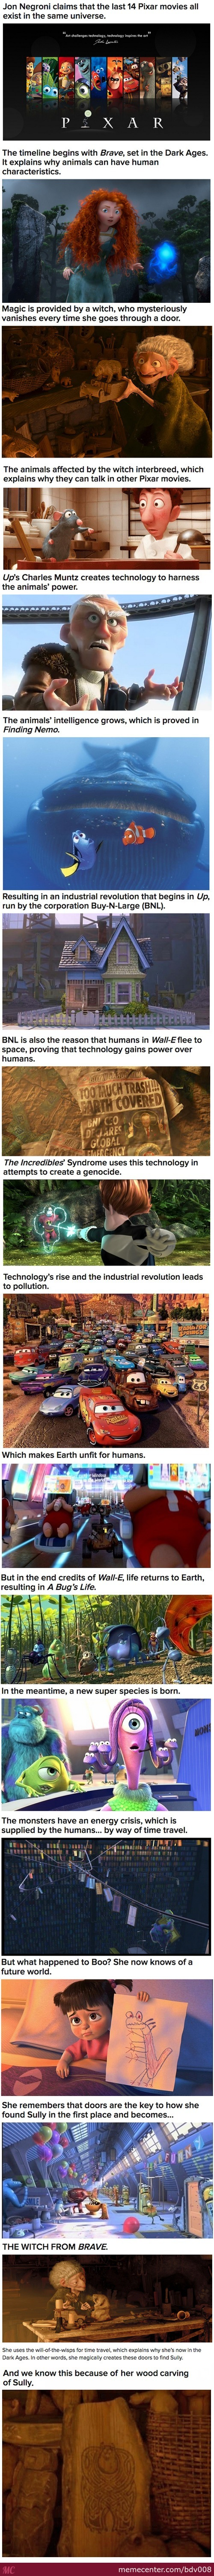 A Theory Of The Pixar Universe